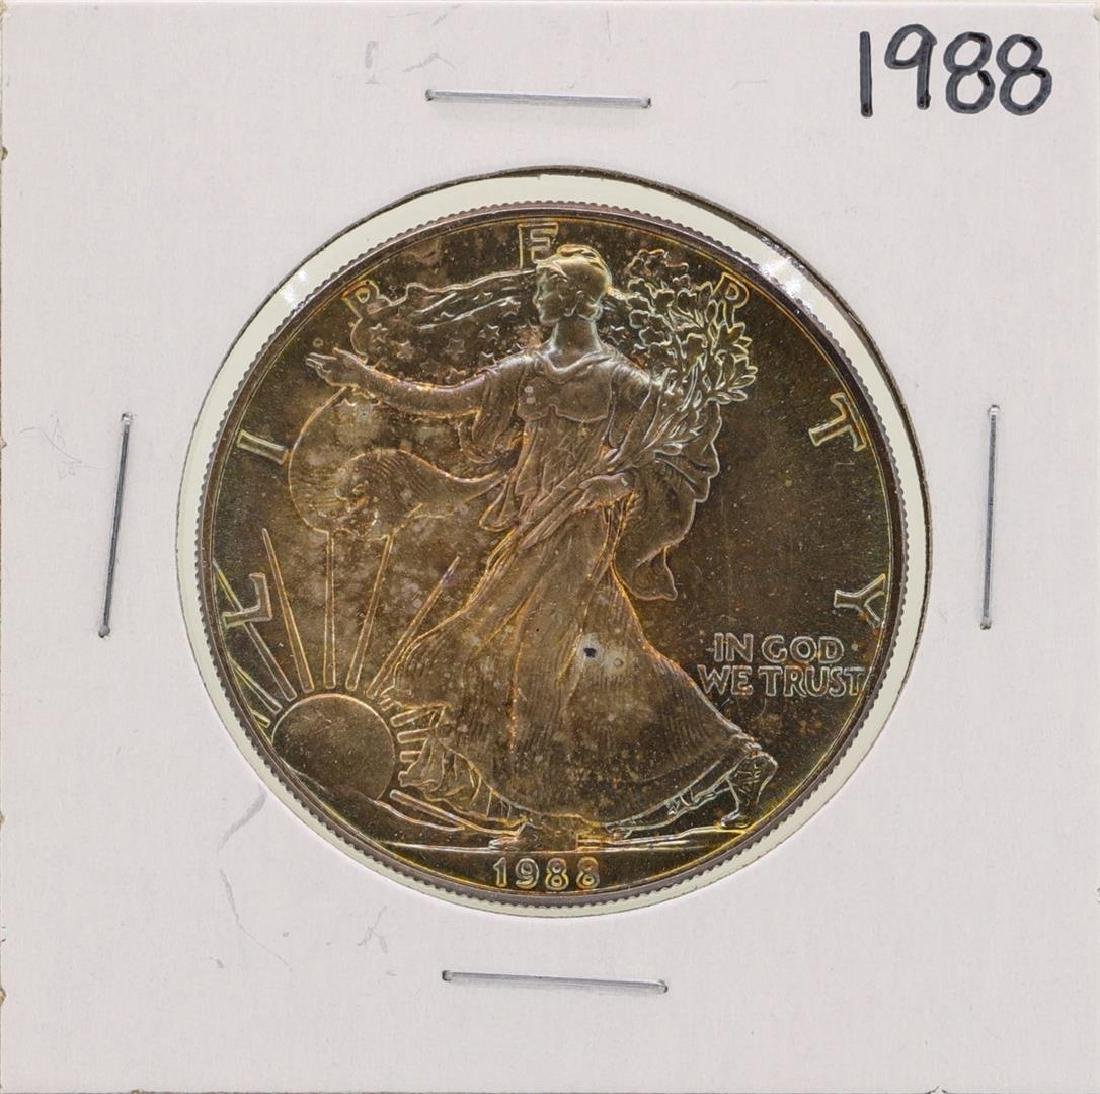 1988 $1 American Silver Eagle Coin Nice Toning